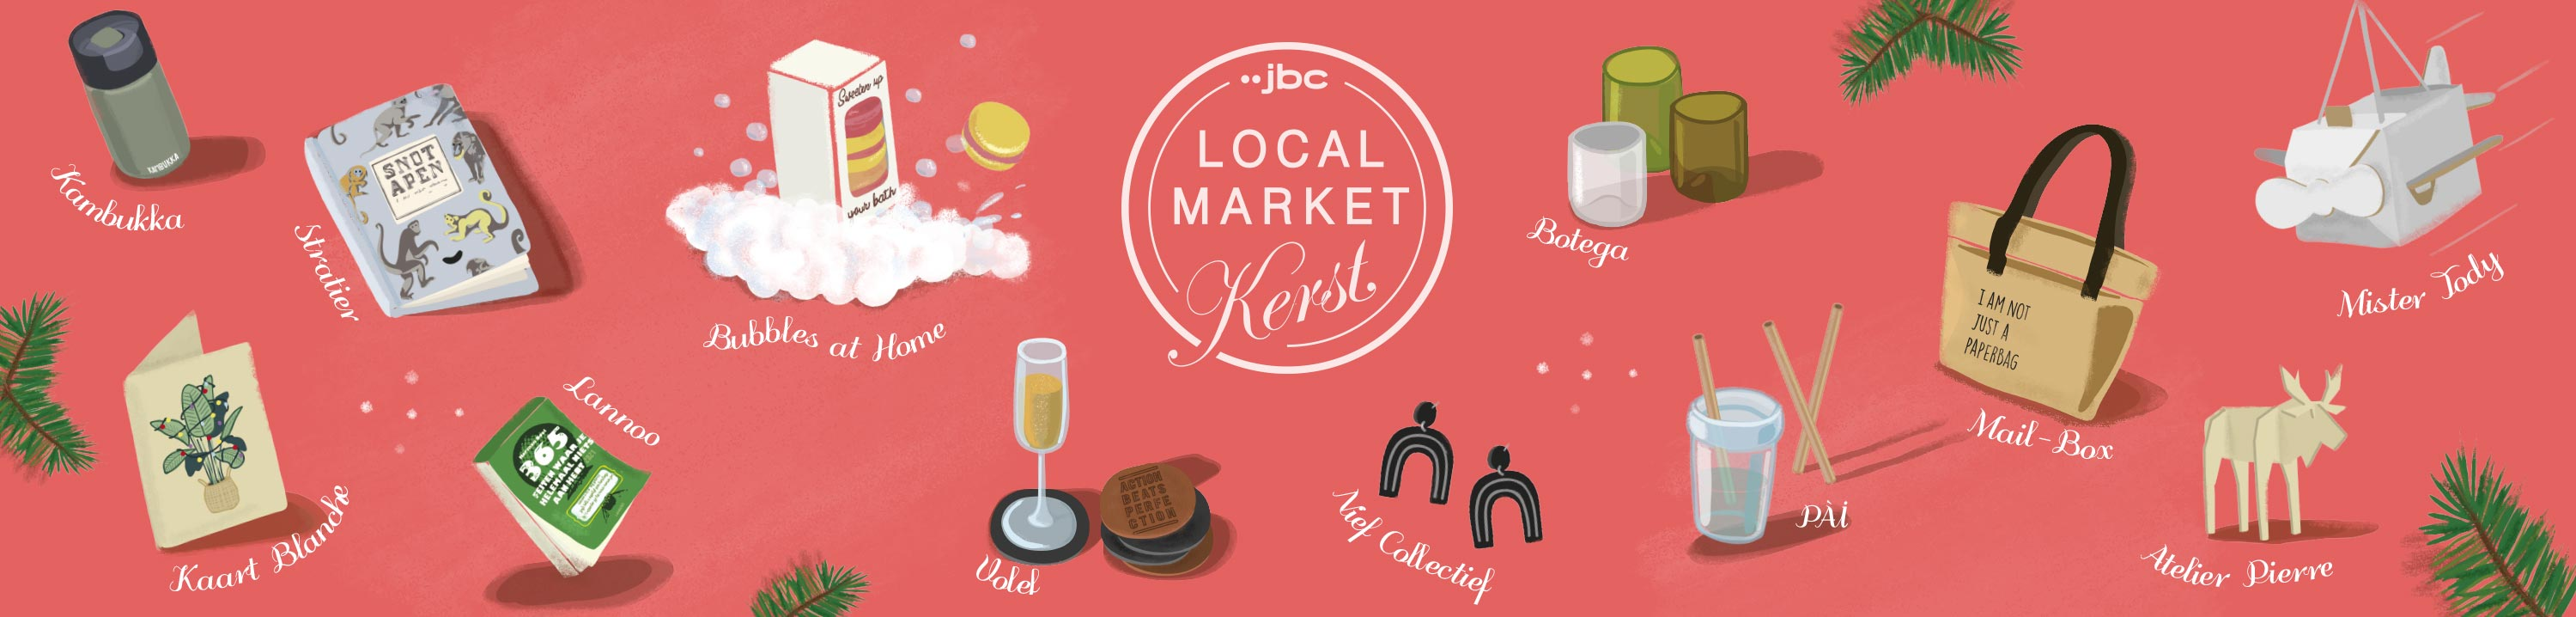 Local Market x JBC